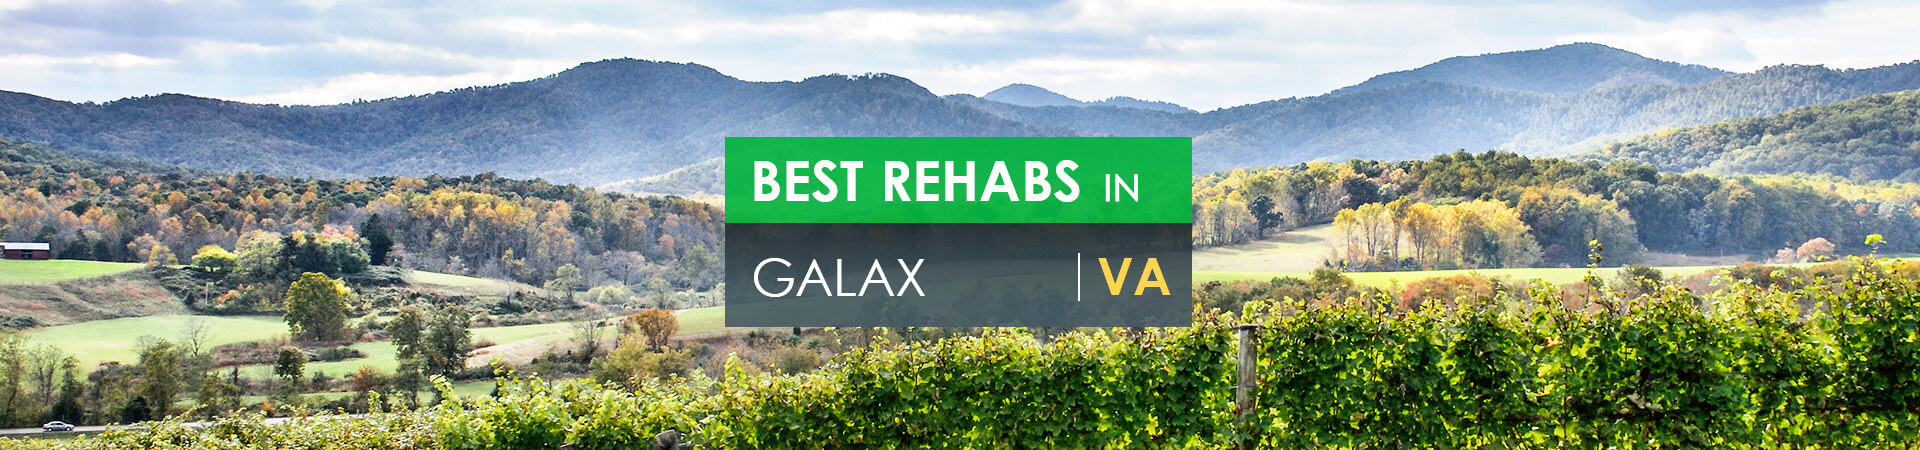 Best rehabs in Galax, VA